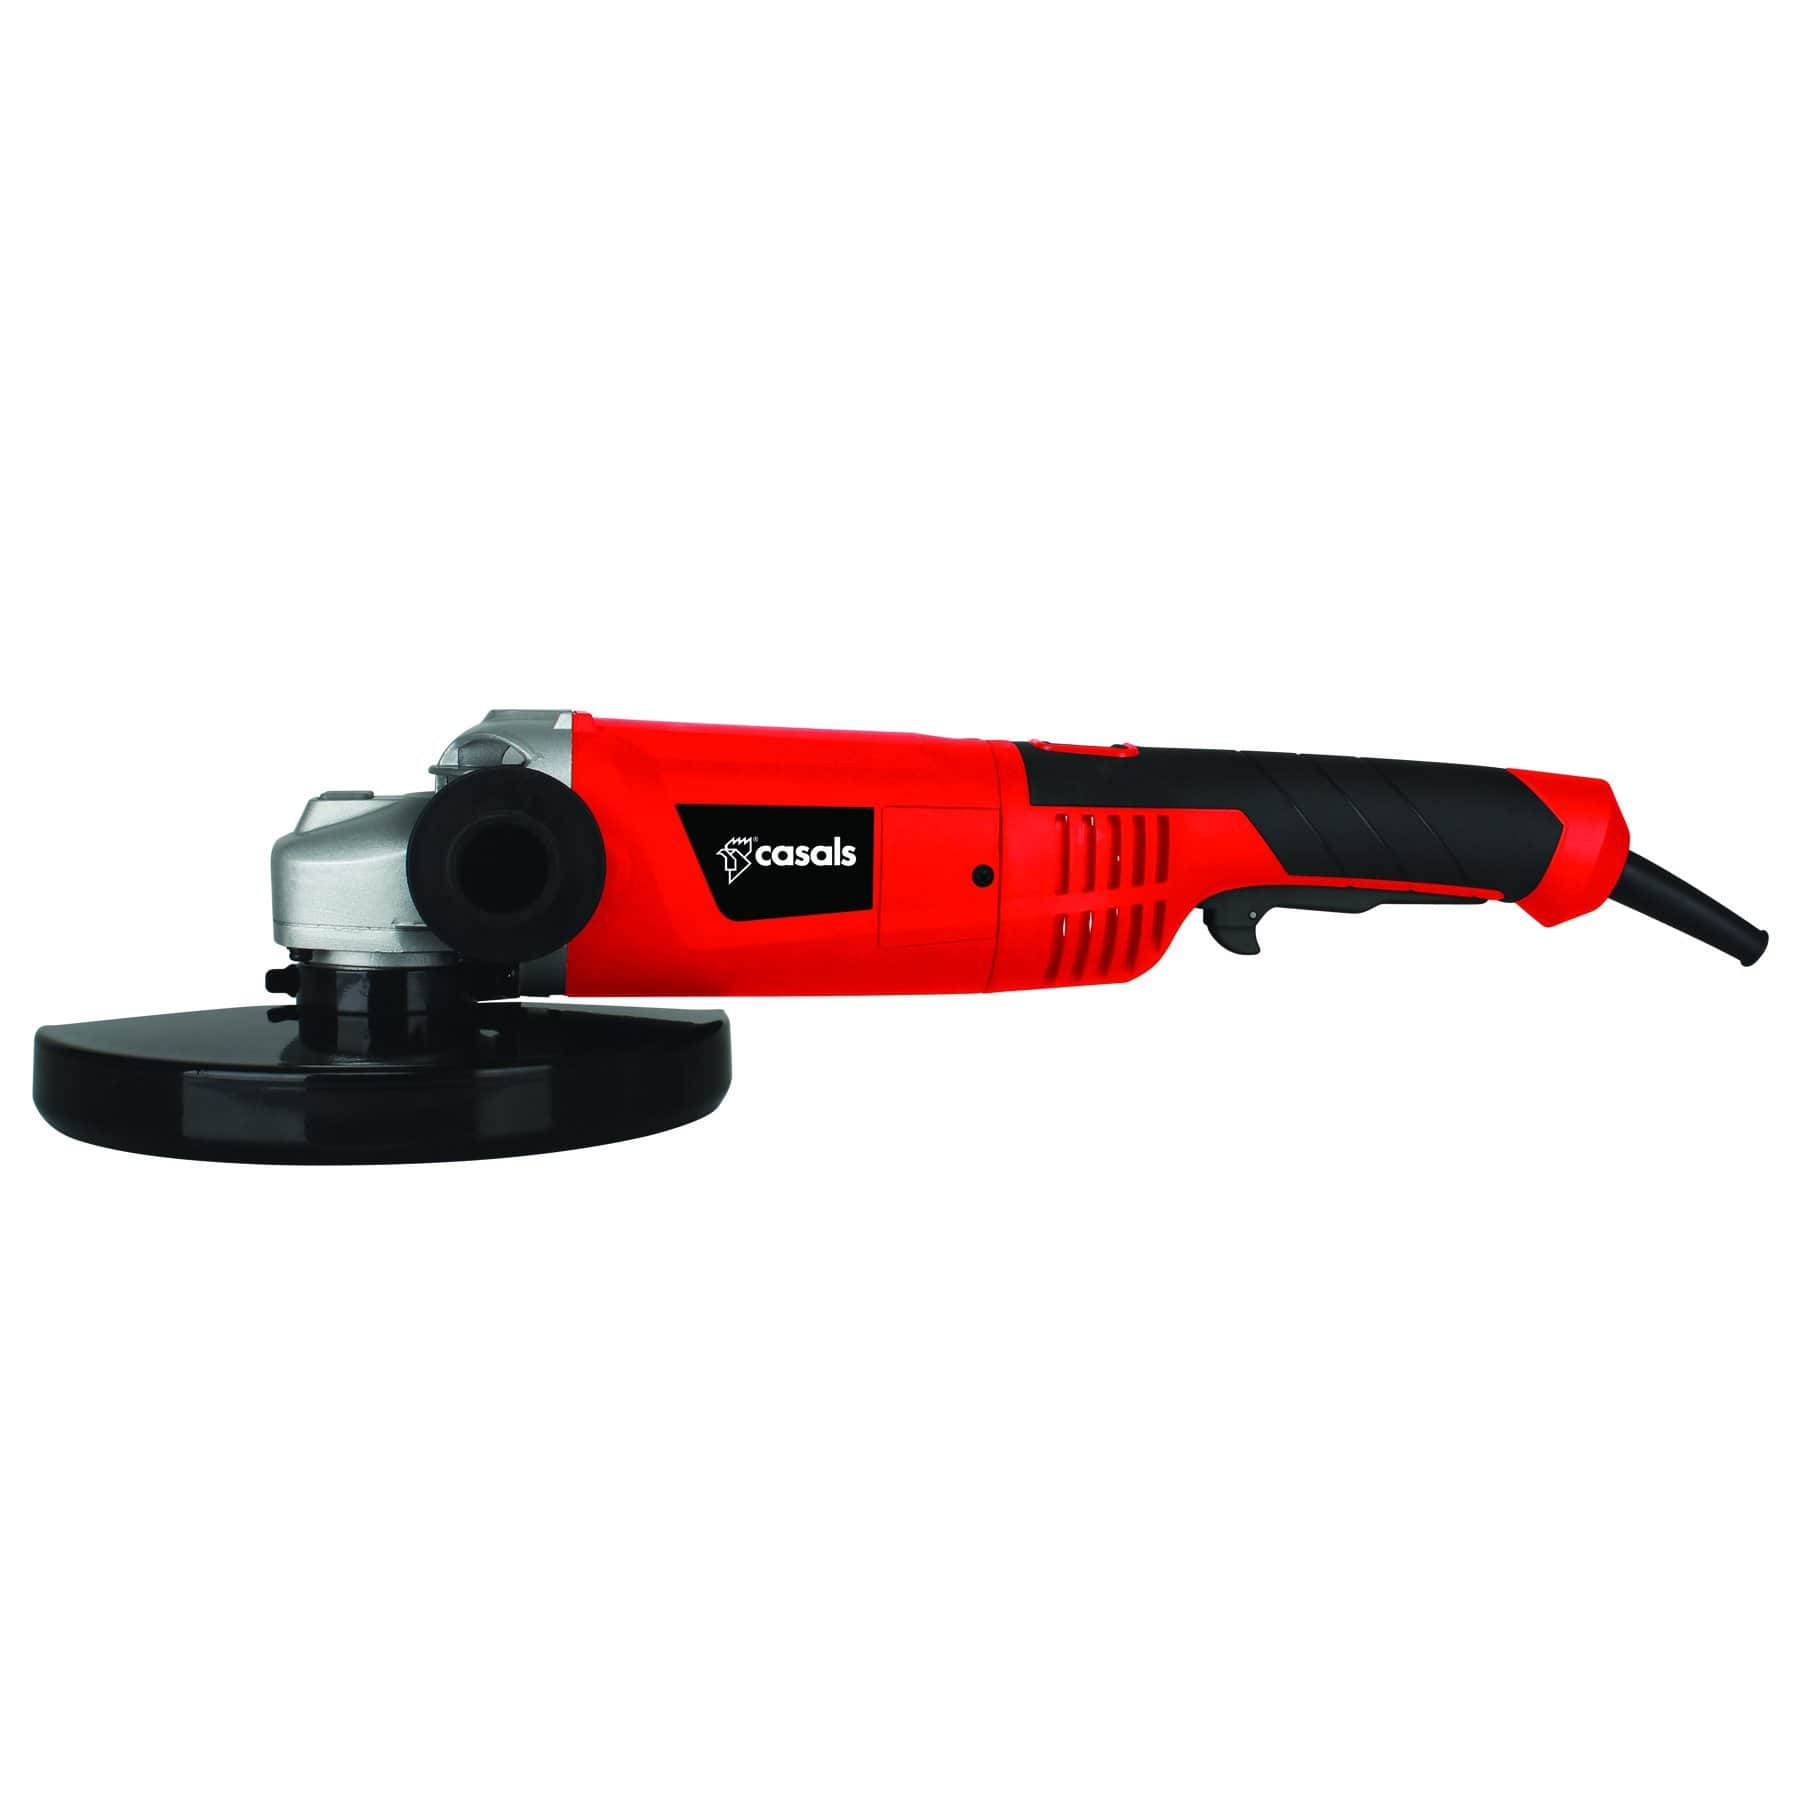 Casals Angle Grinder With Auxiliary Handle Plastic Red 230mm 2000W Snatcher Online Shopping South Africa